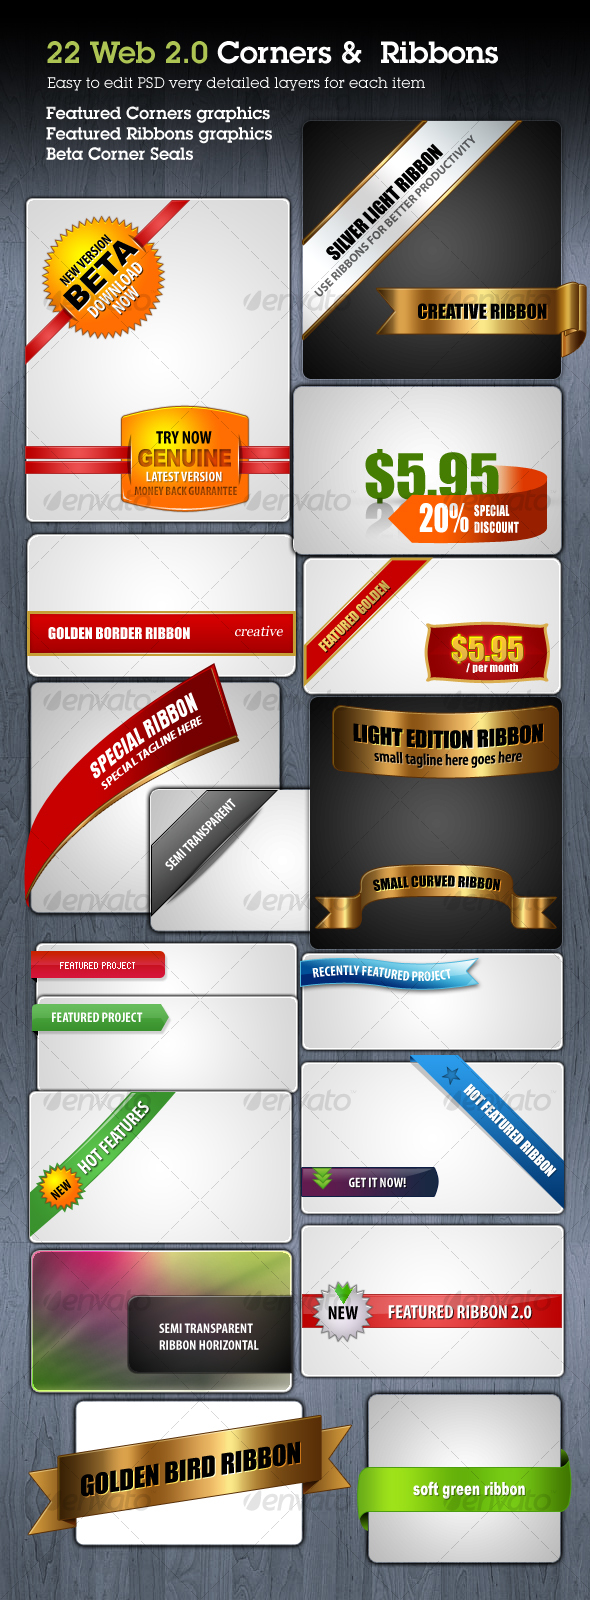 Web Ribbons & Corner Graphics - Web Elements